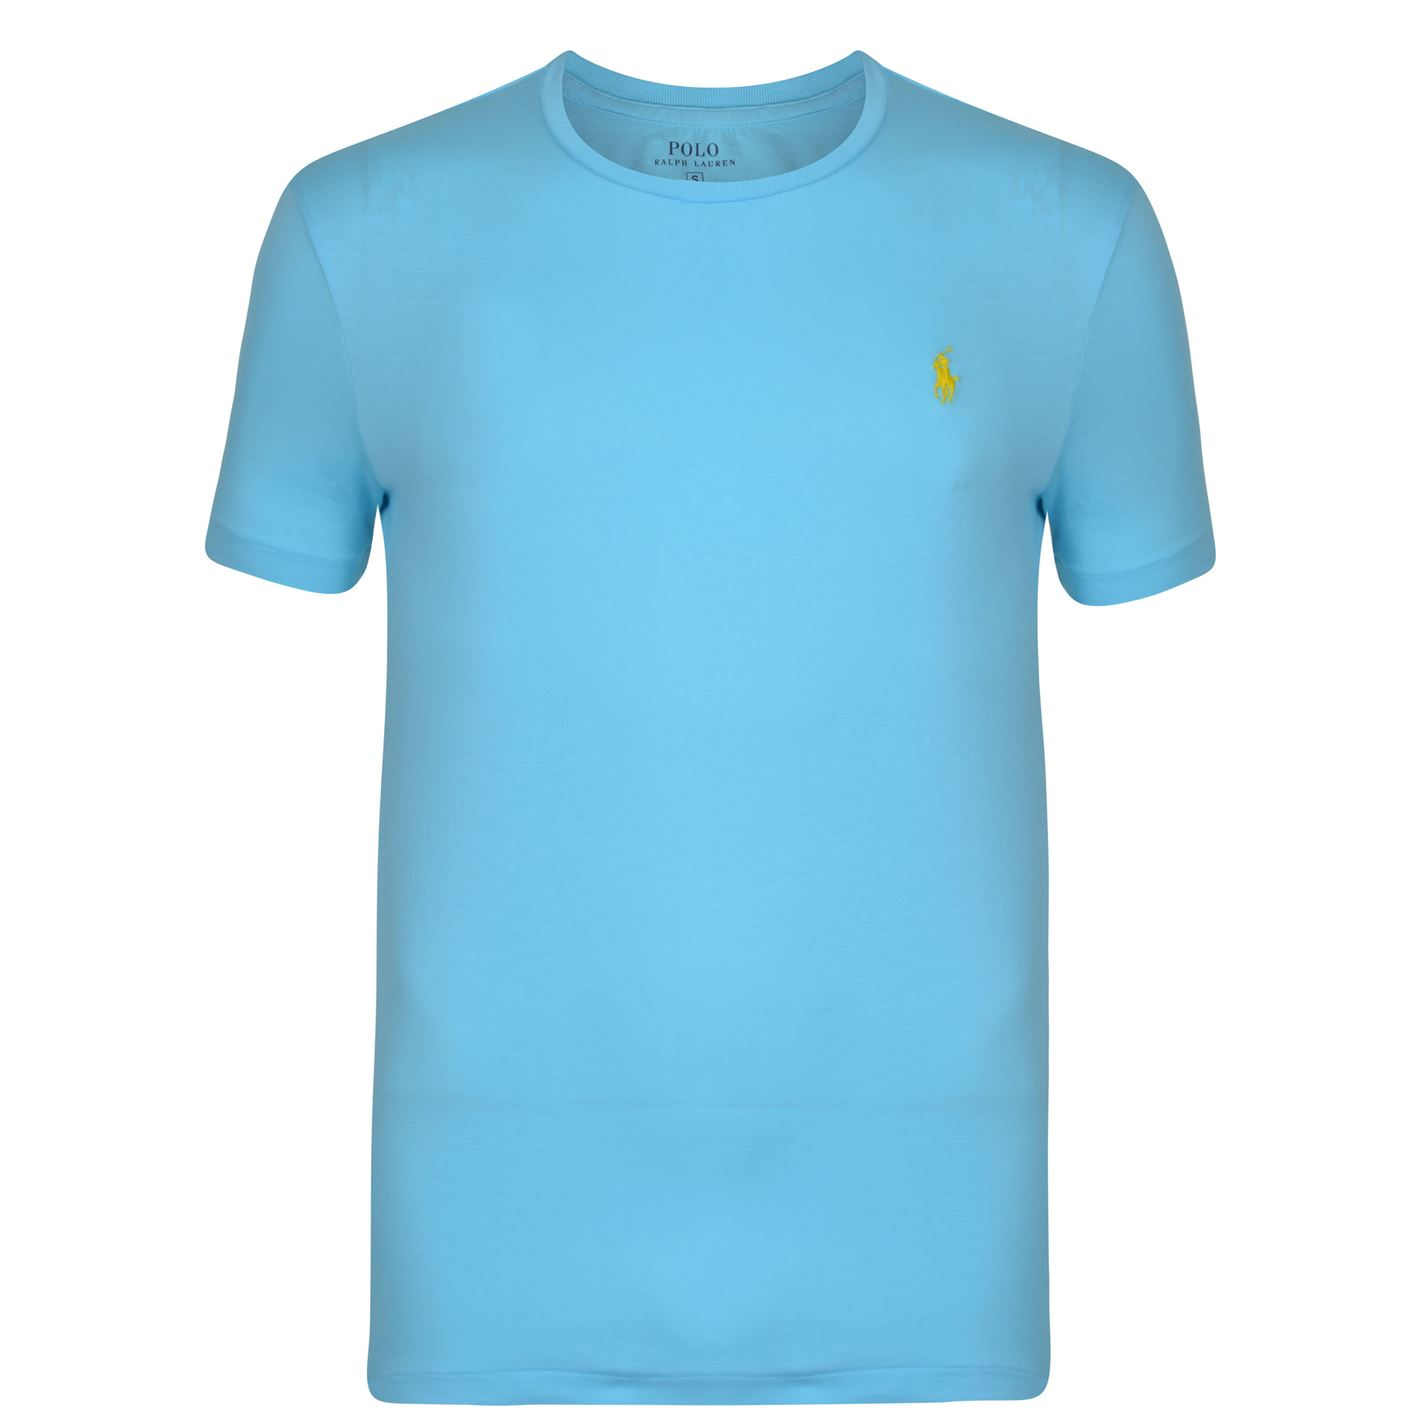 Men's SkyBlue Crew Neck T Shirt large 1